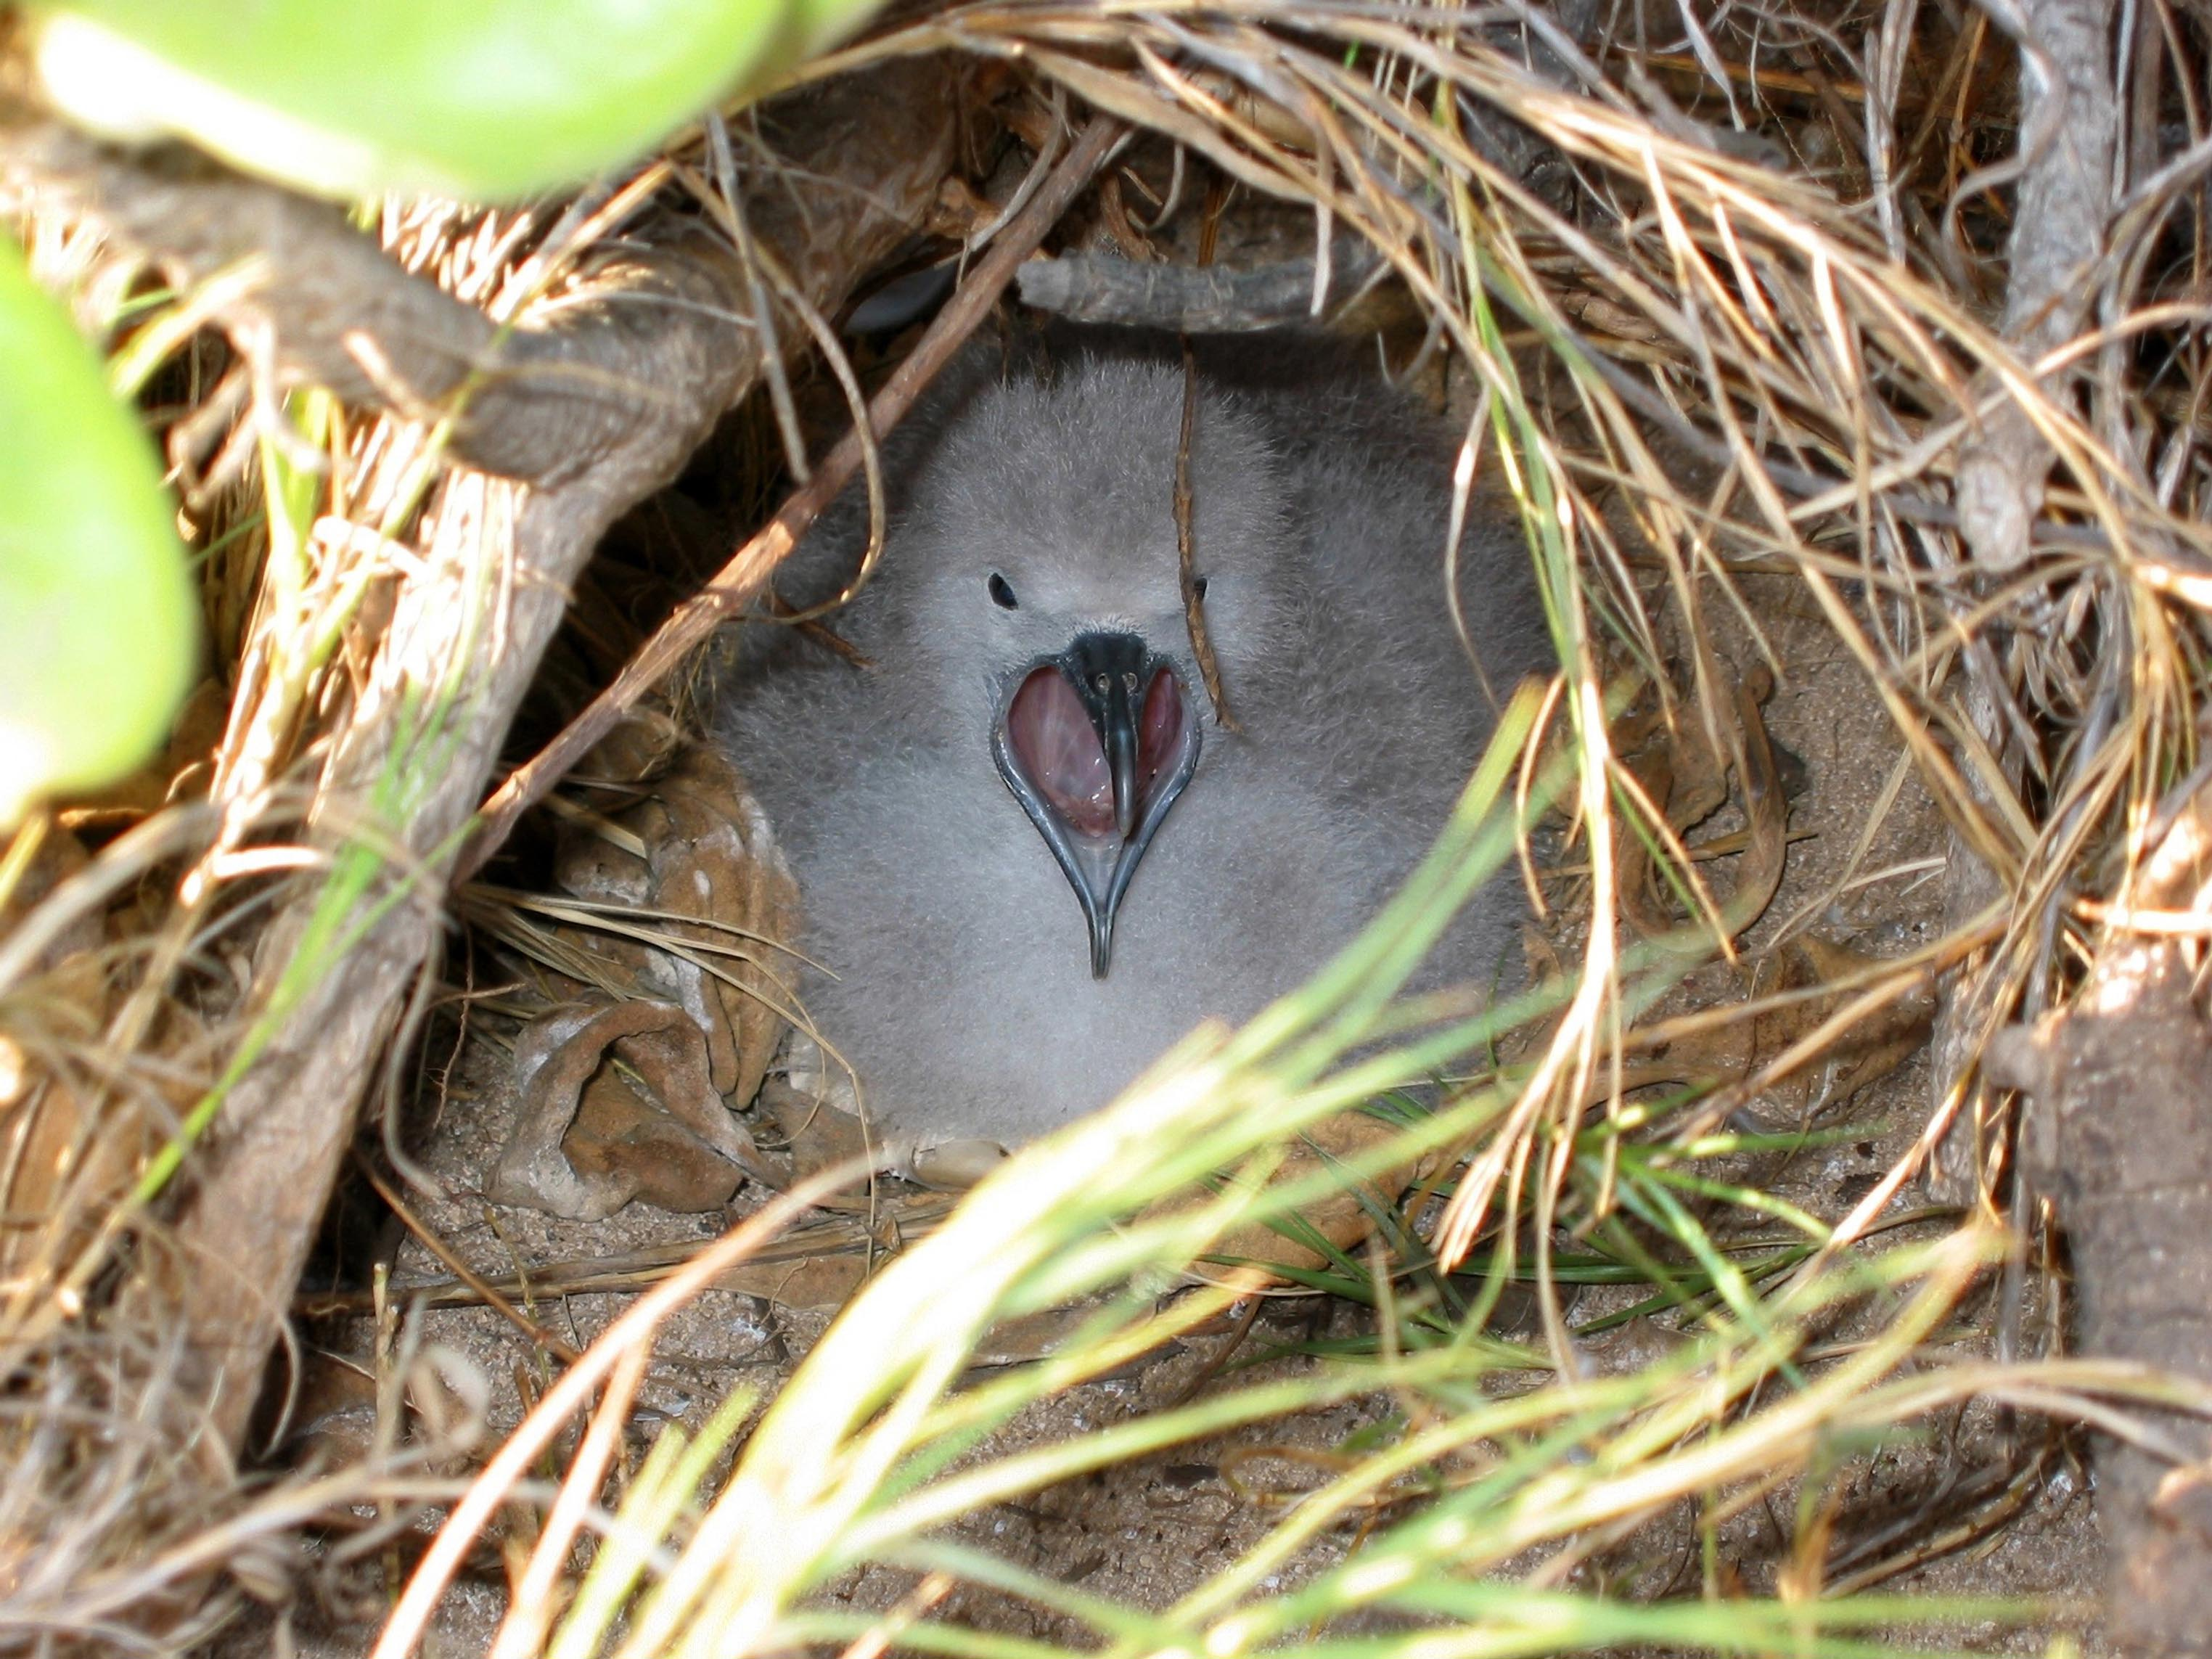 A Shearwater chick in its nest